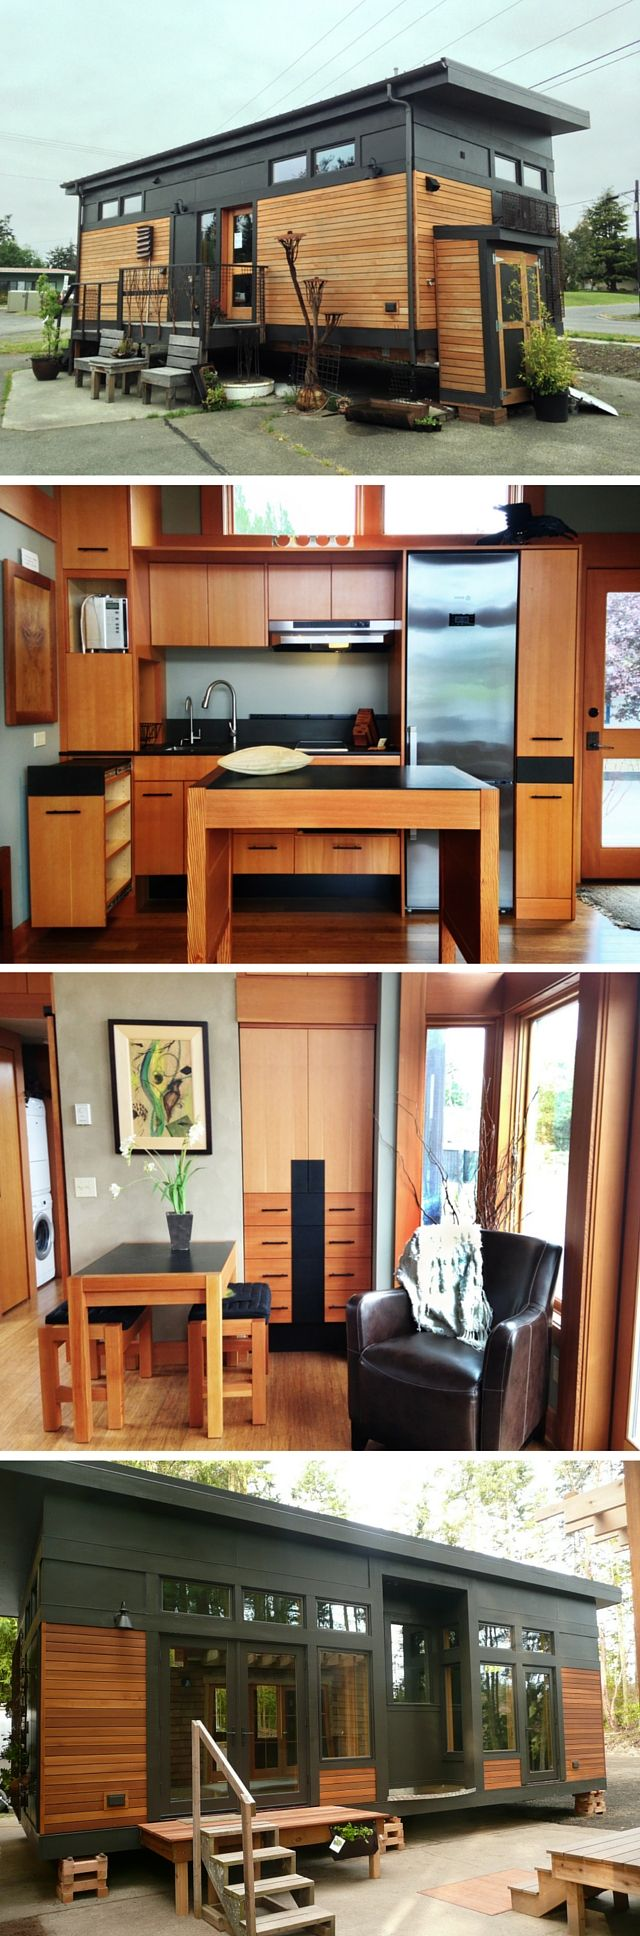 can i move in tomorrow just lovin this model a 450 sq ft tiny house named the waterhaus one of the most beautiful tiny house interiors ive seen